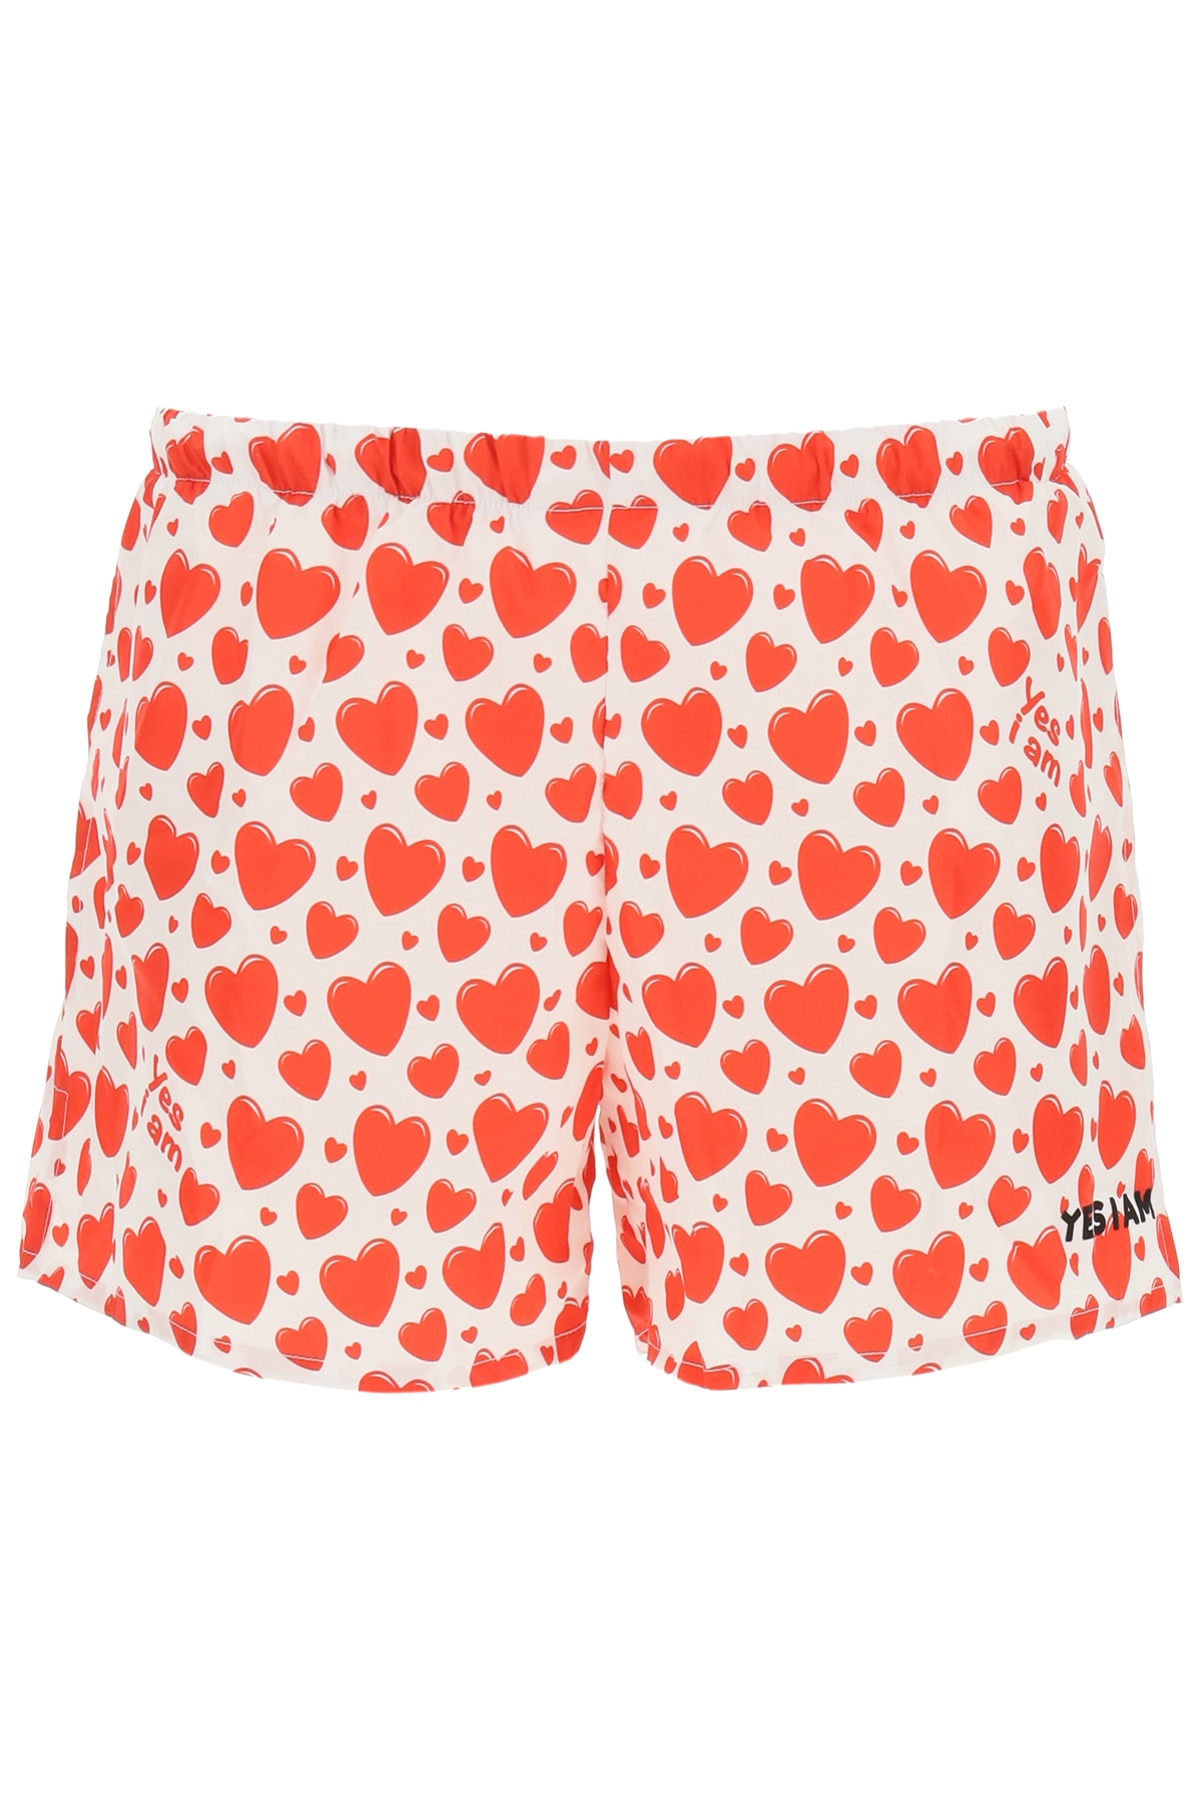 YESIAM RED HEARTS PRINT SWIM SHORTS L White, Red Technical